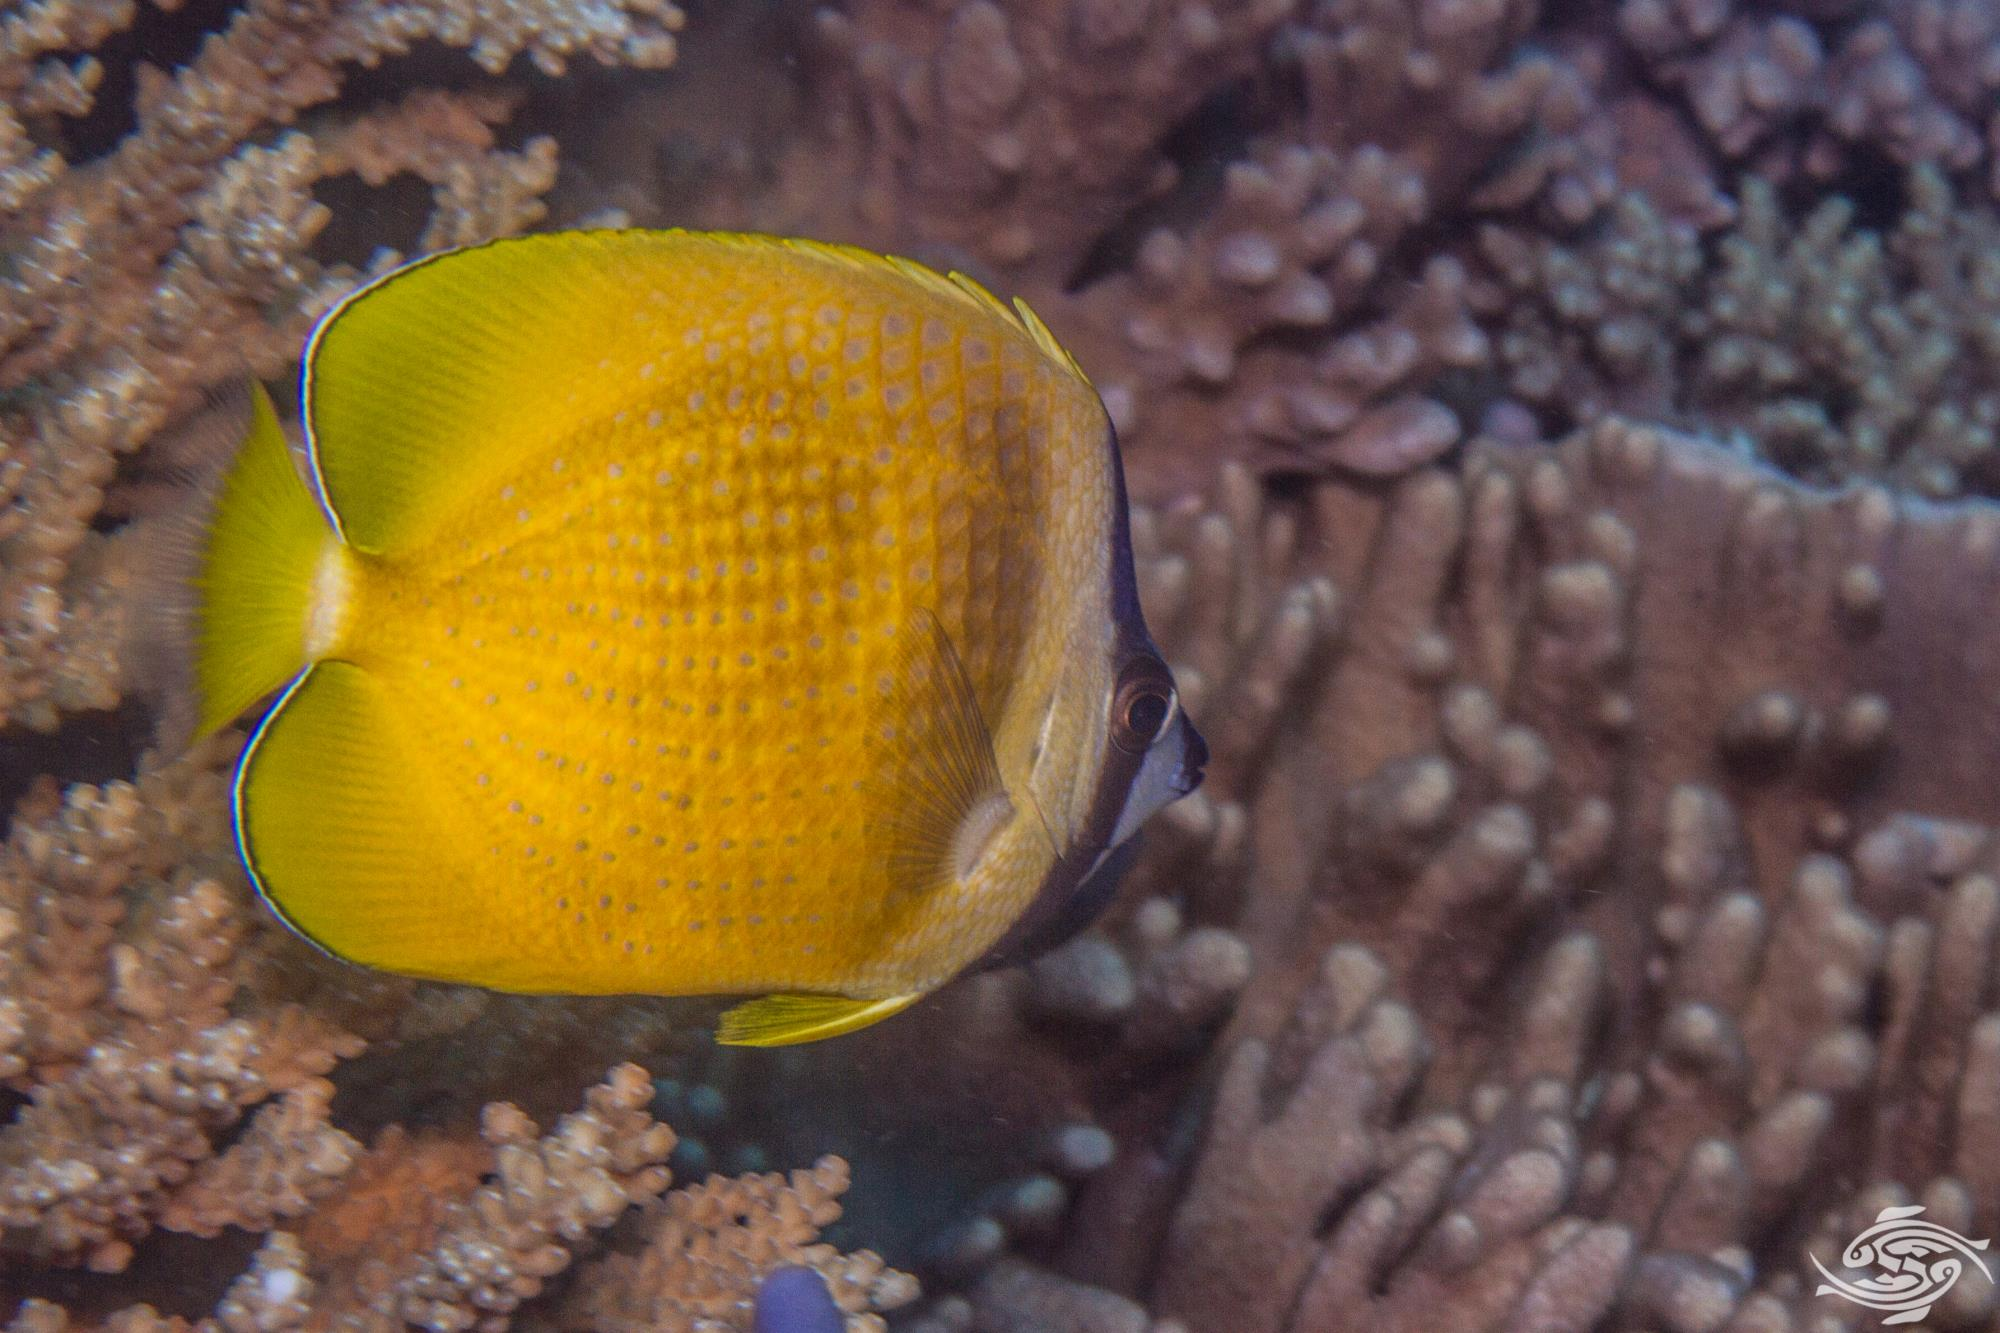 Sunburst Butterflyfish, Chaetodon kleinii is also known as the Black-lipped Butterflyfish, White Spotted Butterflyfish, Orange Butterflyfish and Klein's Butterflyfish